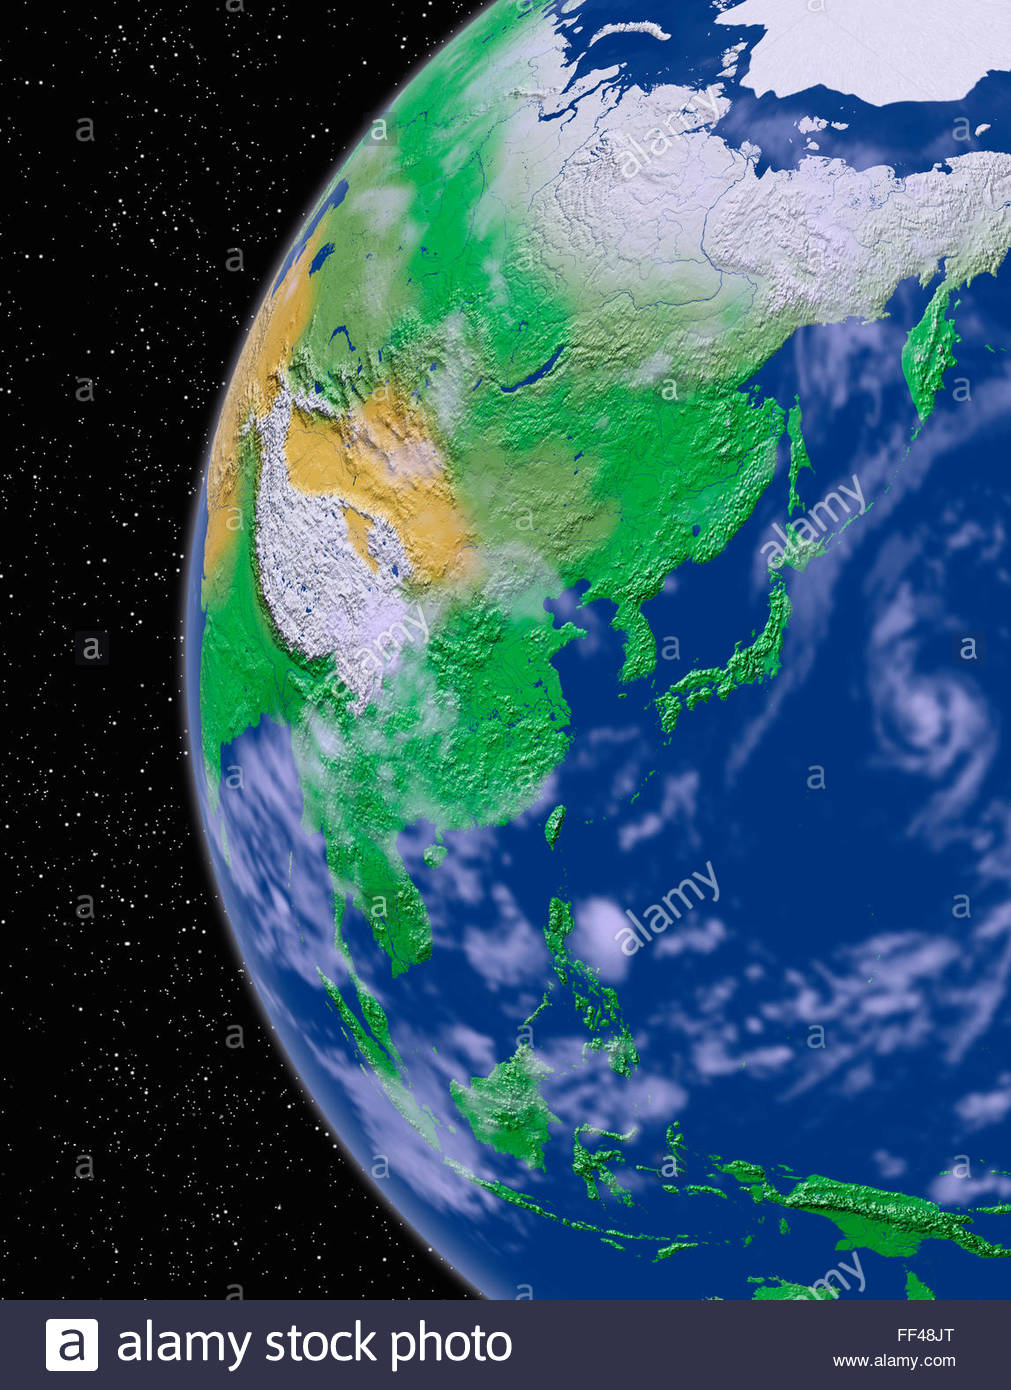 Simulated satellite view of part of the earth asia from space world simulated satellite view of part of the earth asia from space world map space planet globe terrain relief sphere continent maps gumiabroncs Gallery